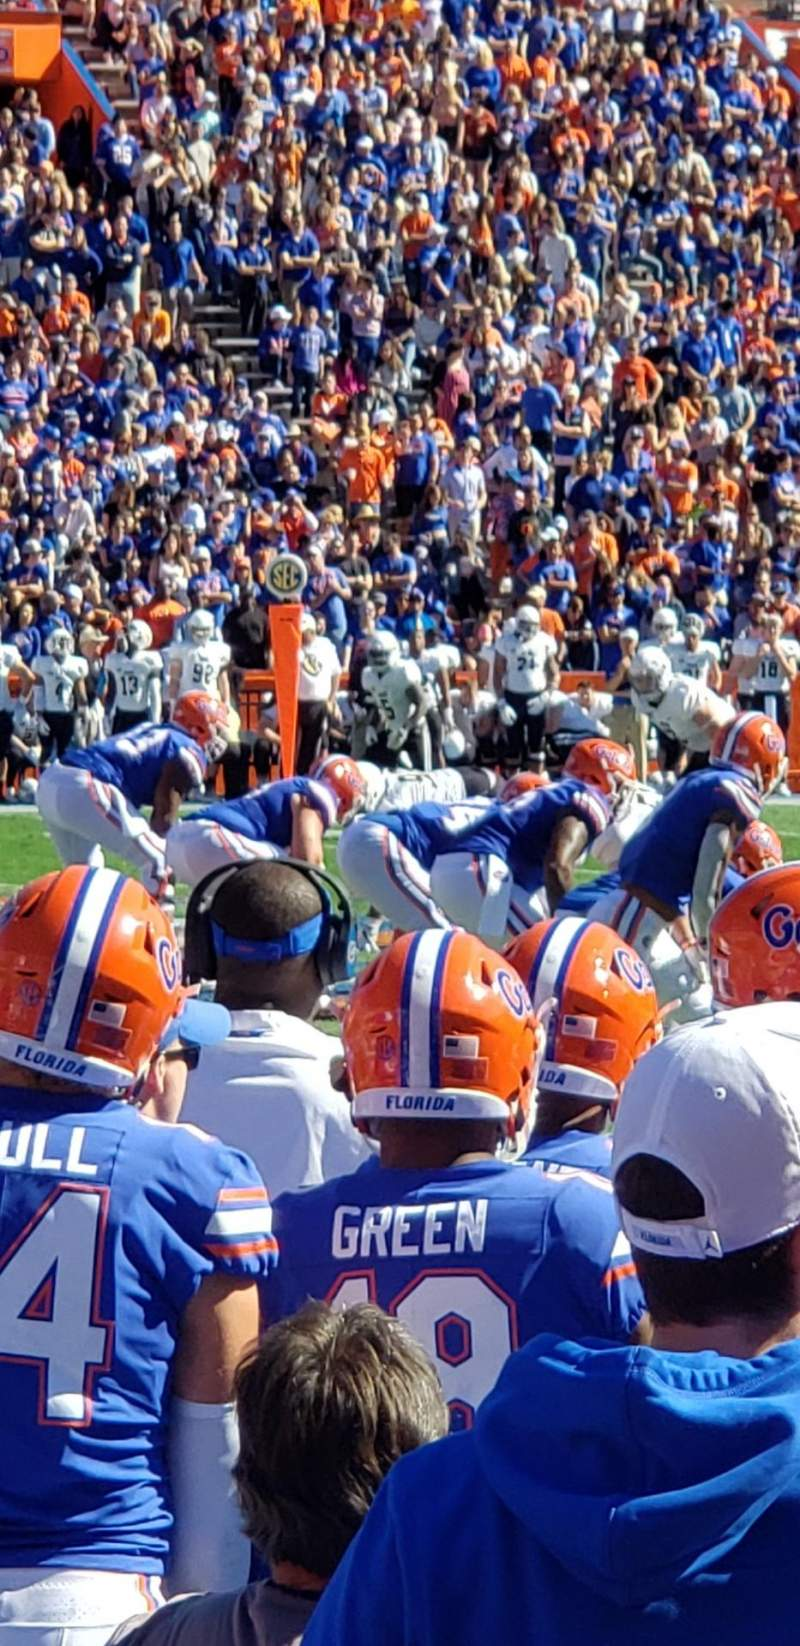 Seating view for Ben Hill Griffin Stadium Section 10 Row 3 Seat 15